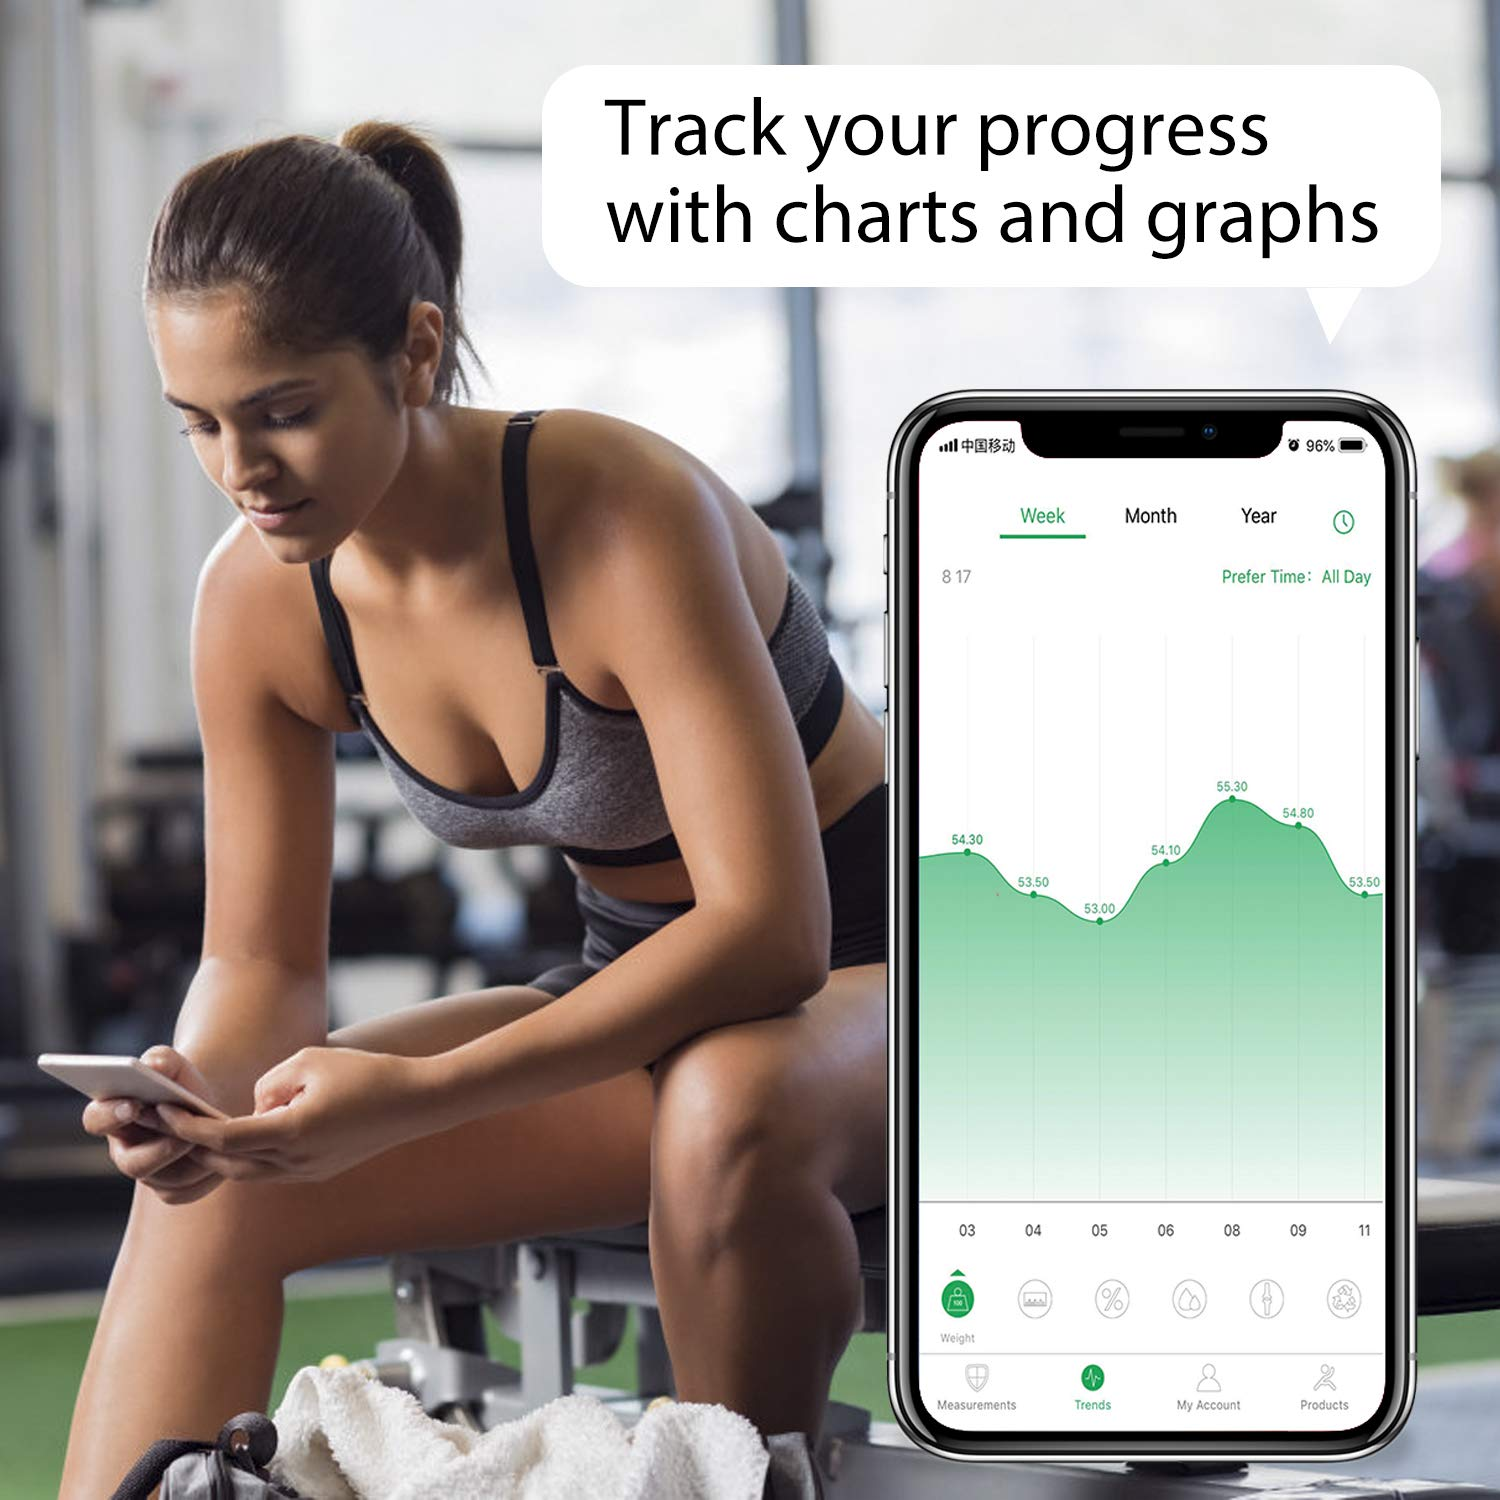 RENPHO Bluetooth Body Fat Smart Scale USB Rechargeable Digital Bathroom Weight Scale Body Fat Monitor with Smartphone App, 396 lbs by RENPHO (Image #4)